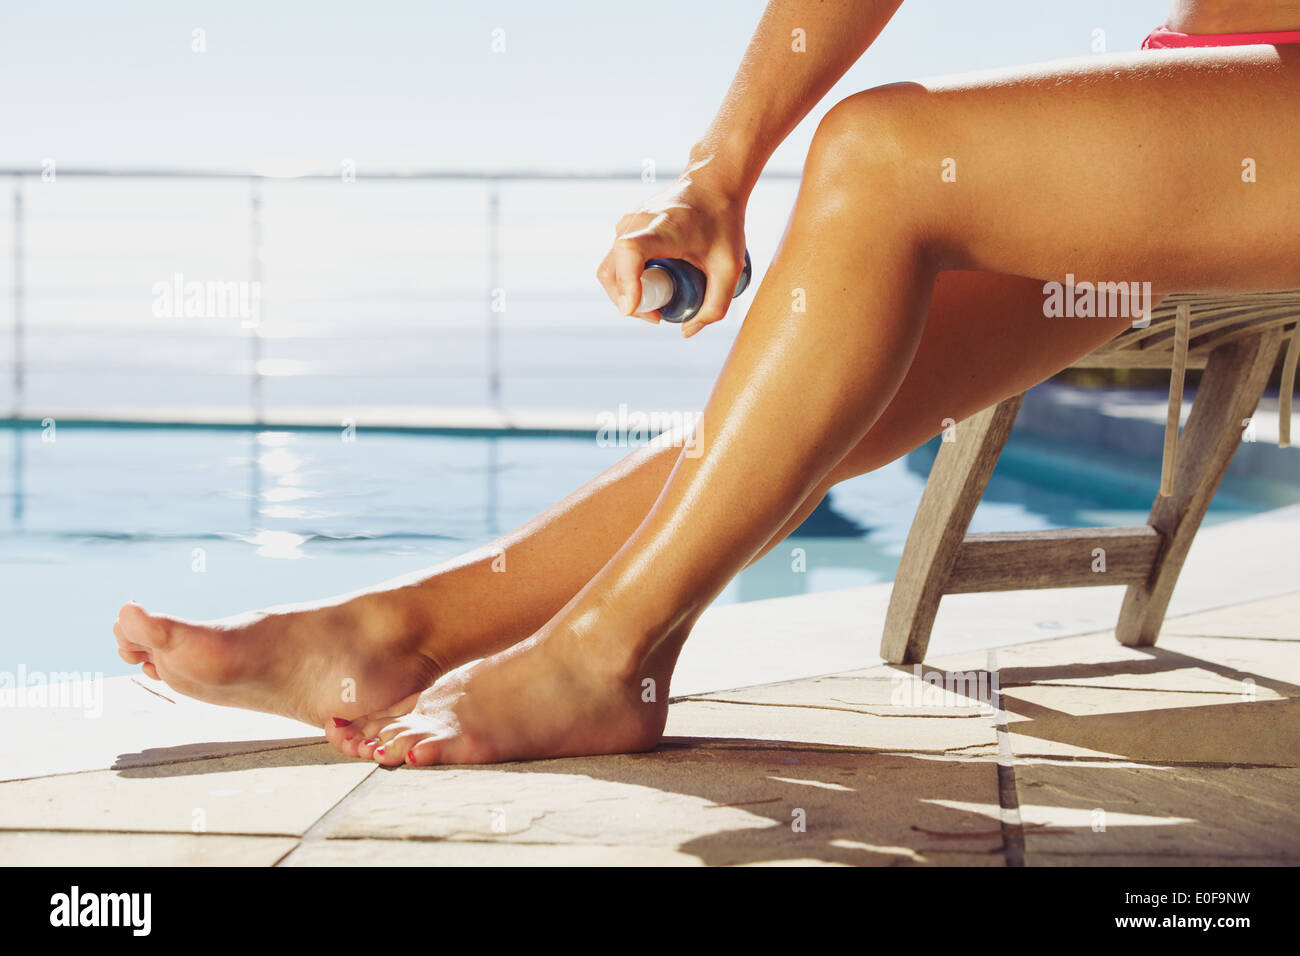 Woman applying suntan spray onto her legs. Female sitting on recliner chair by the swimming pool sunbathing. - Stock Image